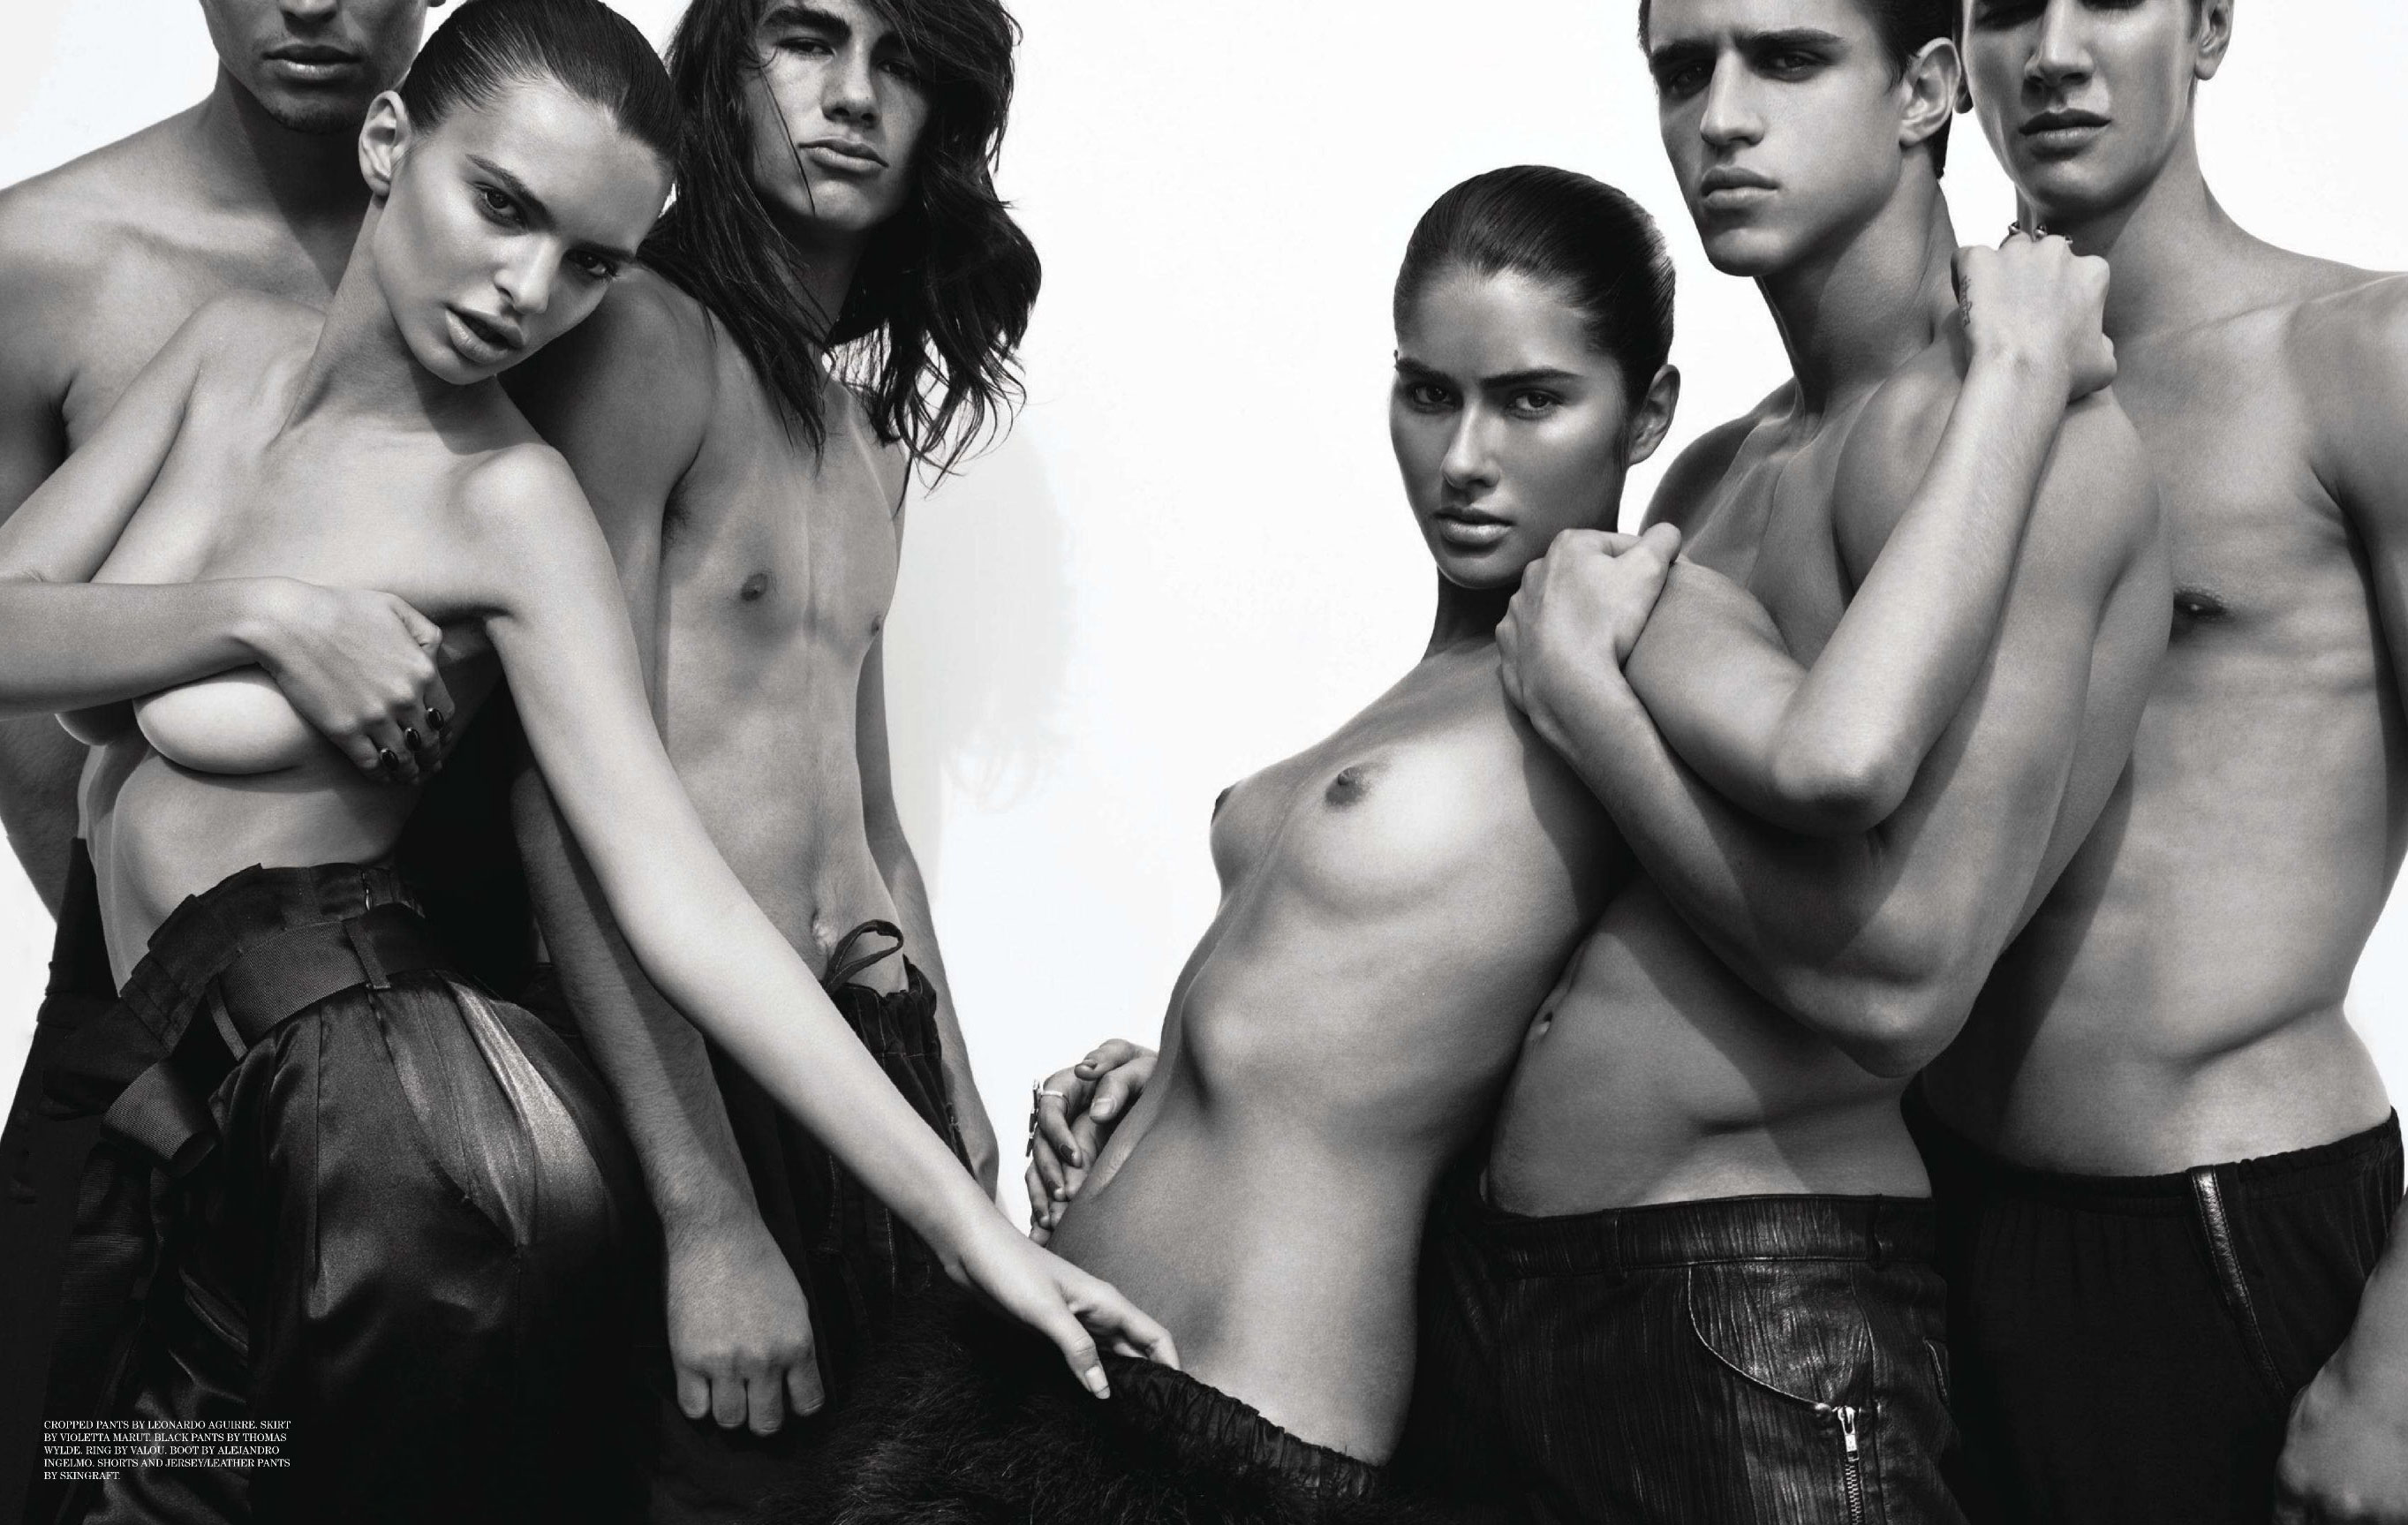 Emily Ratajkowski and other / The Casting by Tony Duran / Treats! Magazine issue 01 spring 2011